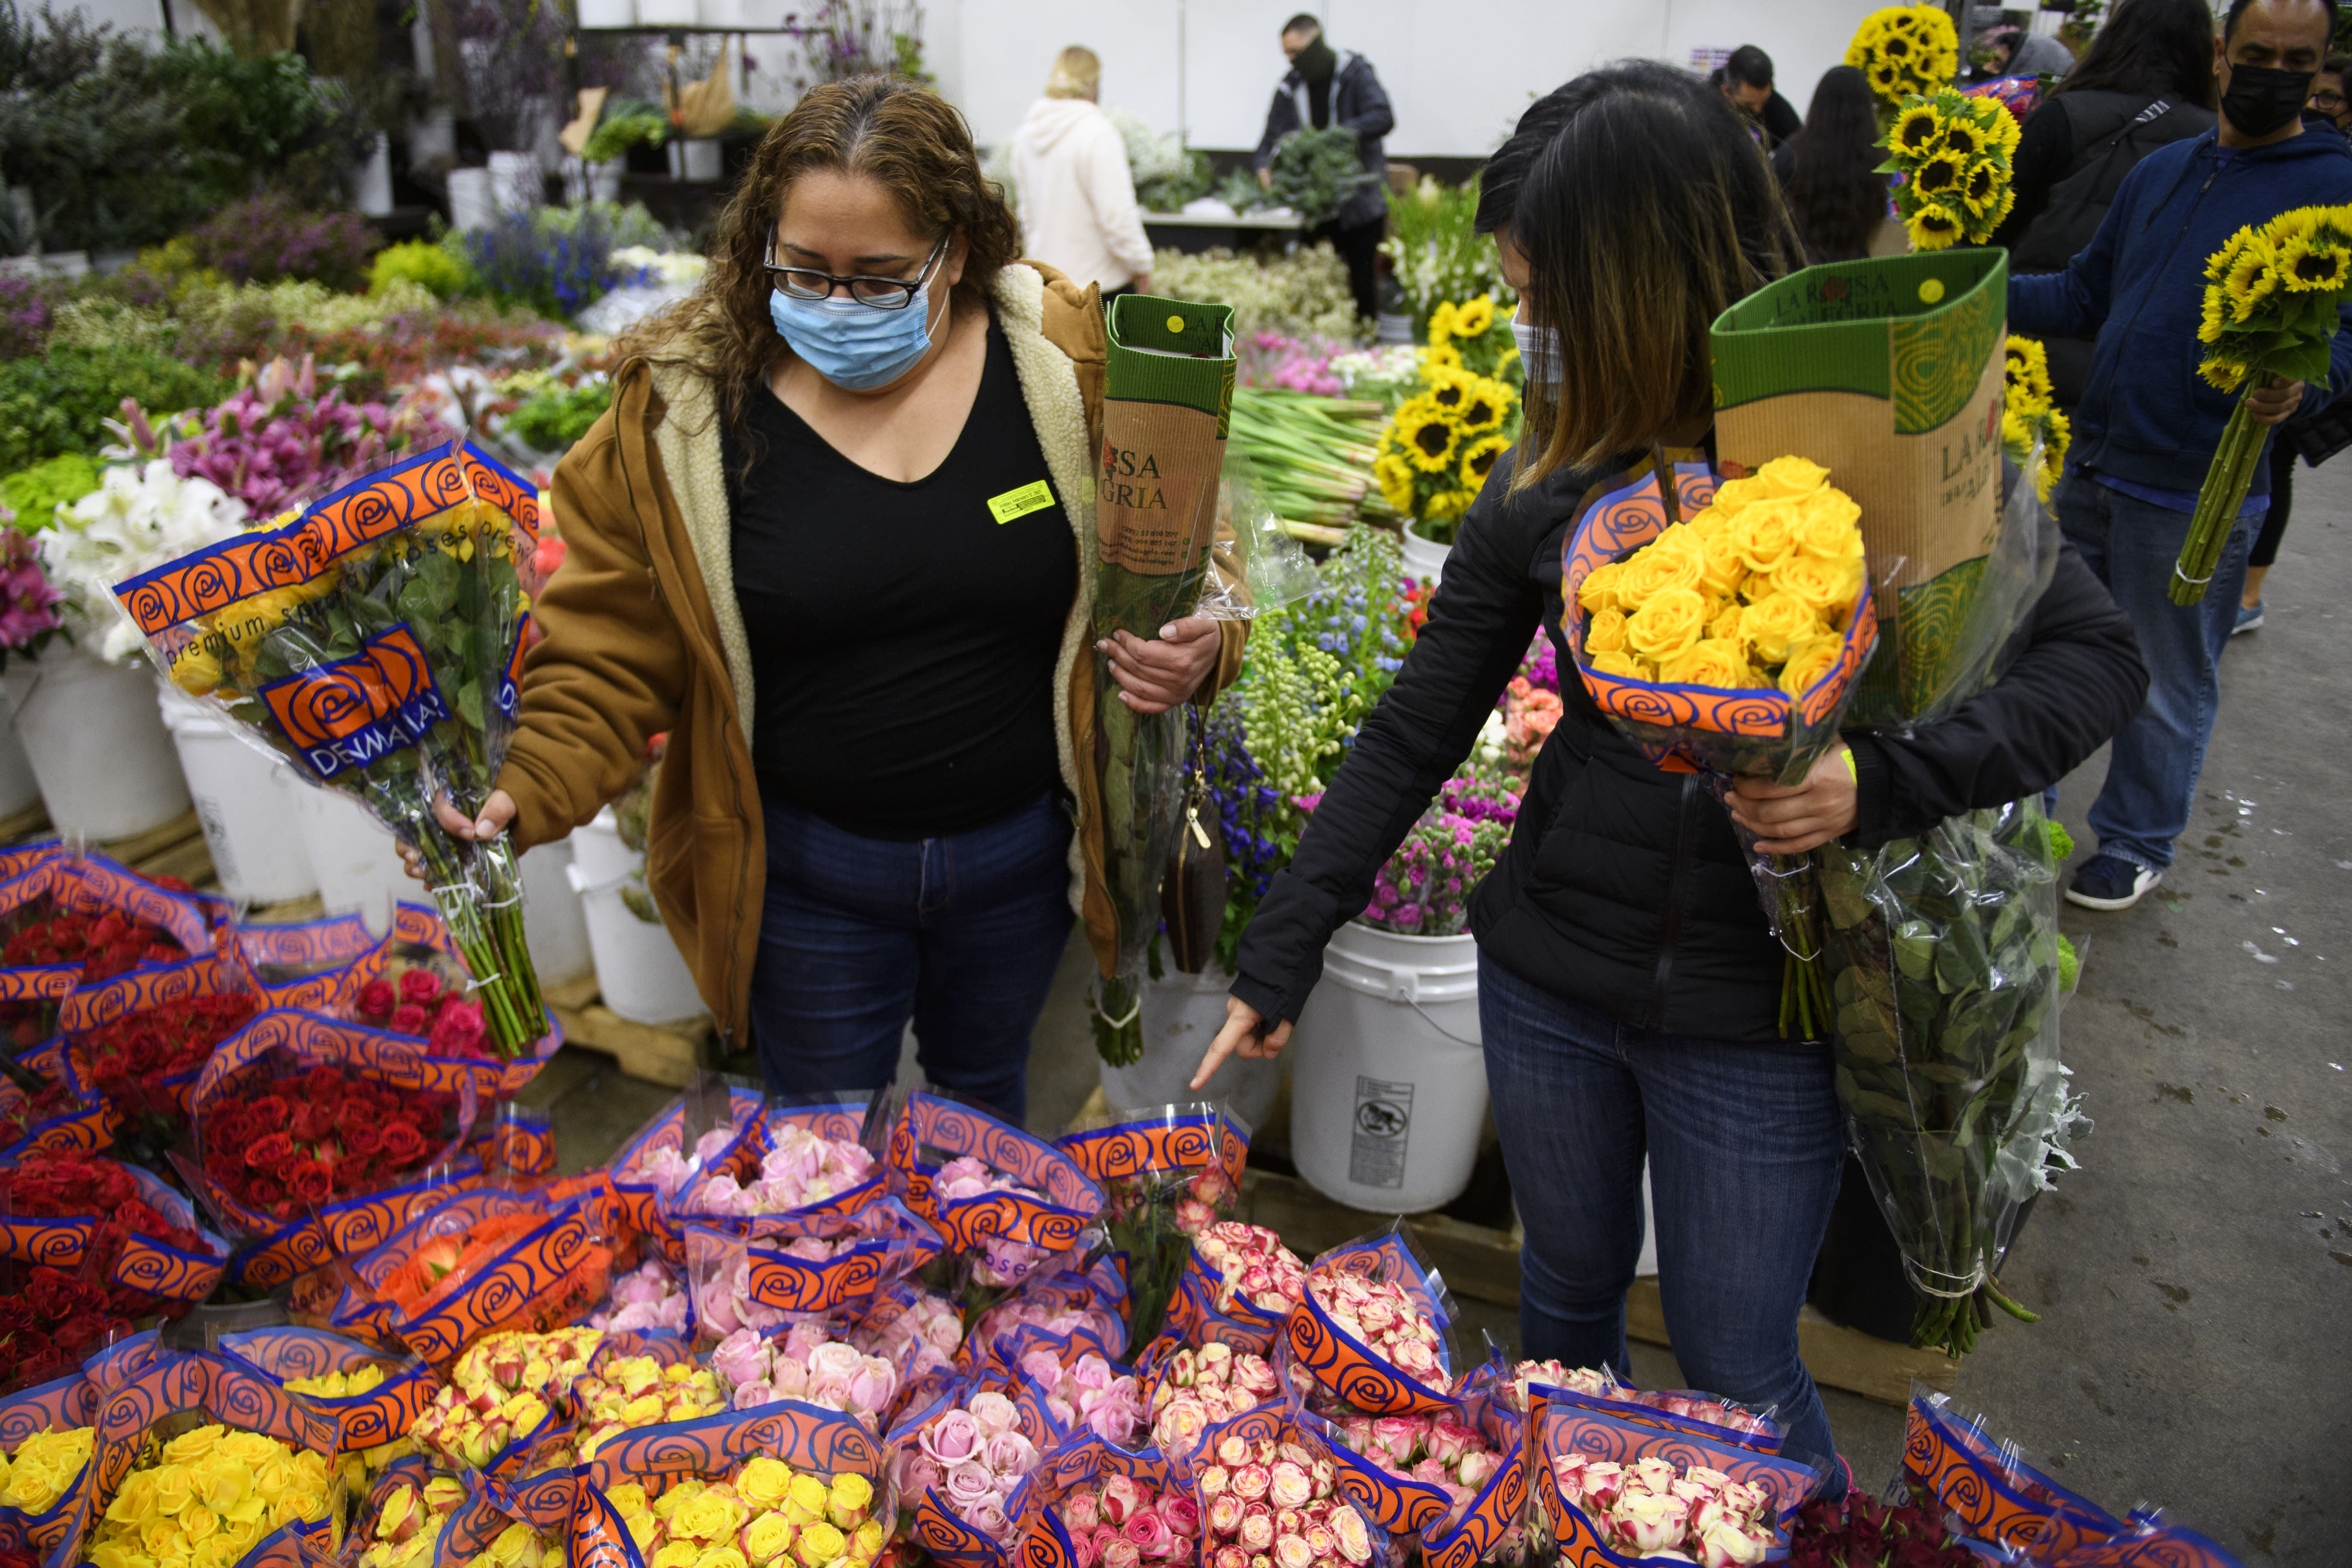 1-800-Flowers CEO states shortages of flowers and berries won't ruin its Mother's Day sales thumbnail